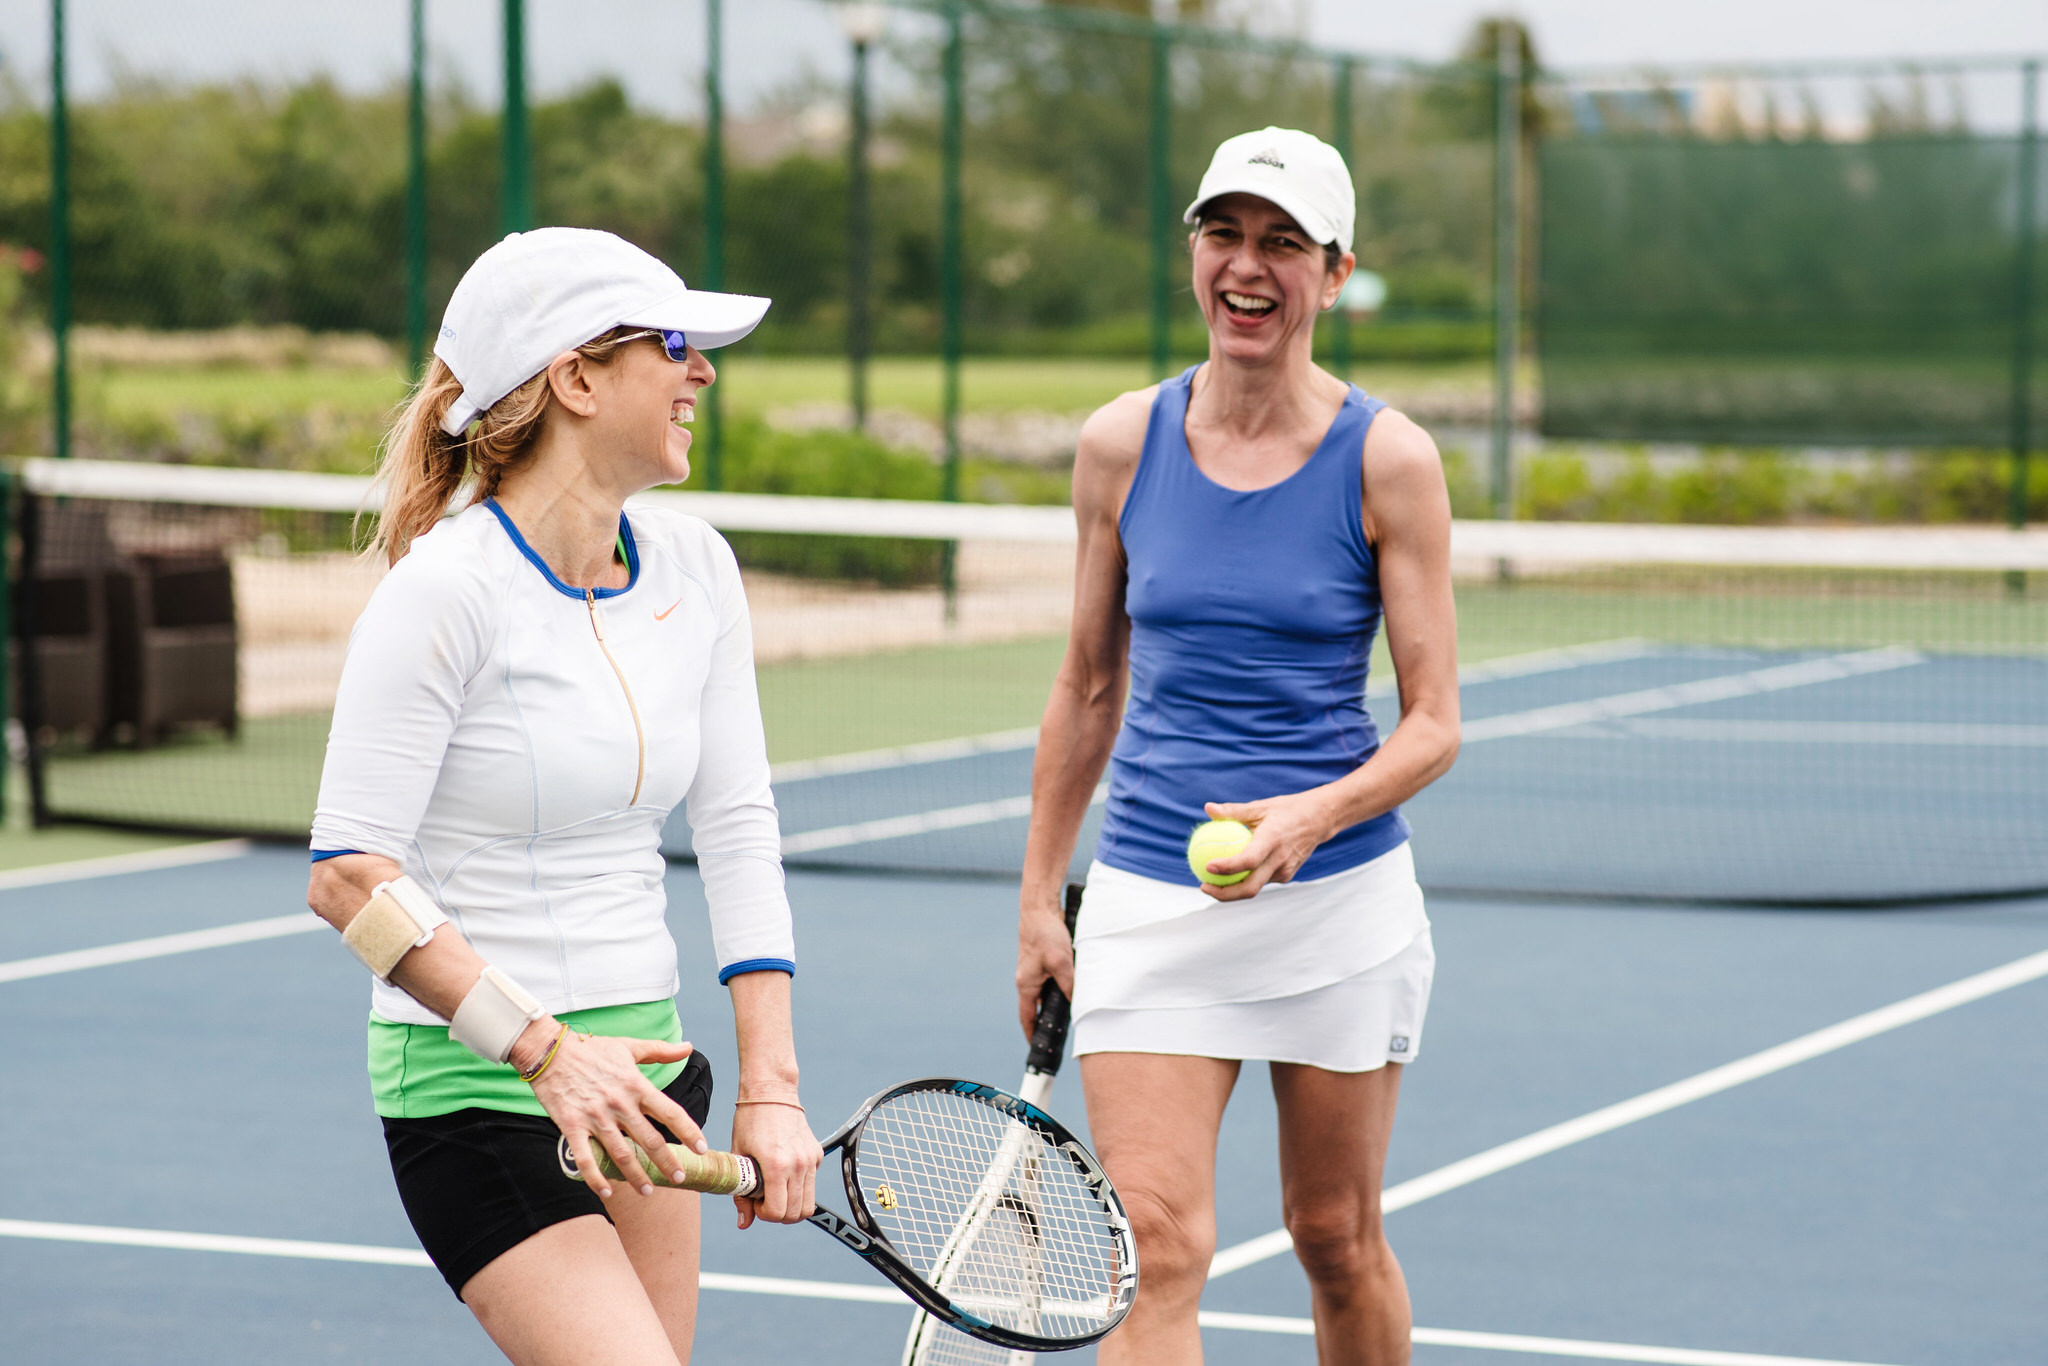 Ritz Carlton Grand Cayman Tennis Event Coverage by Zee Anna Photography